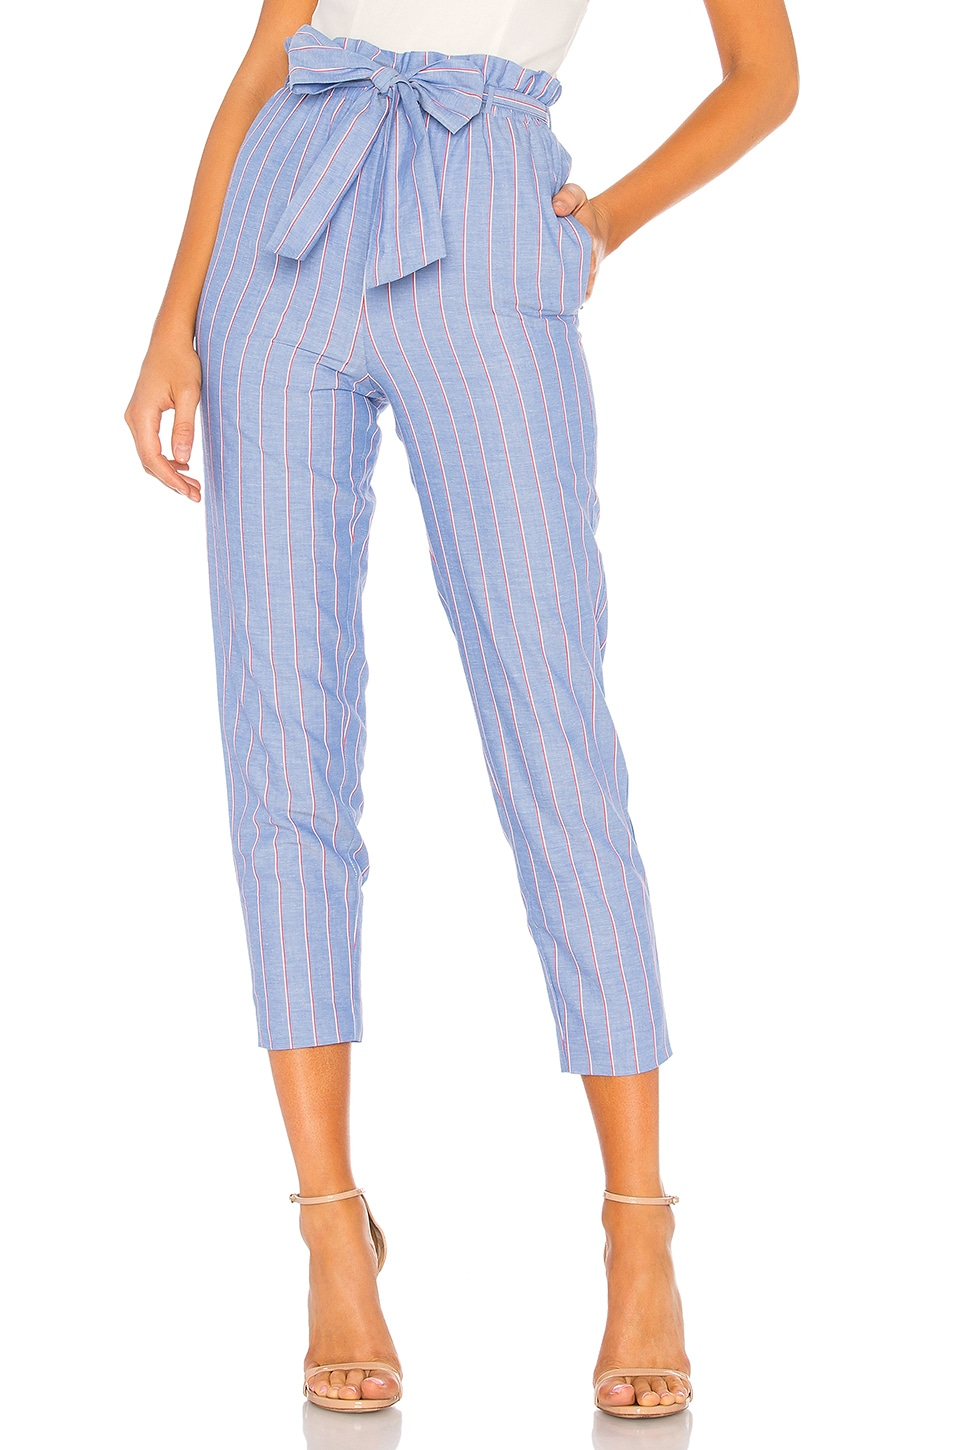 MAJORELLE Tristan Crop Pant in Blue Stripe